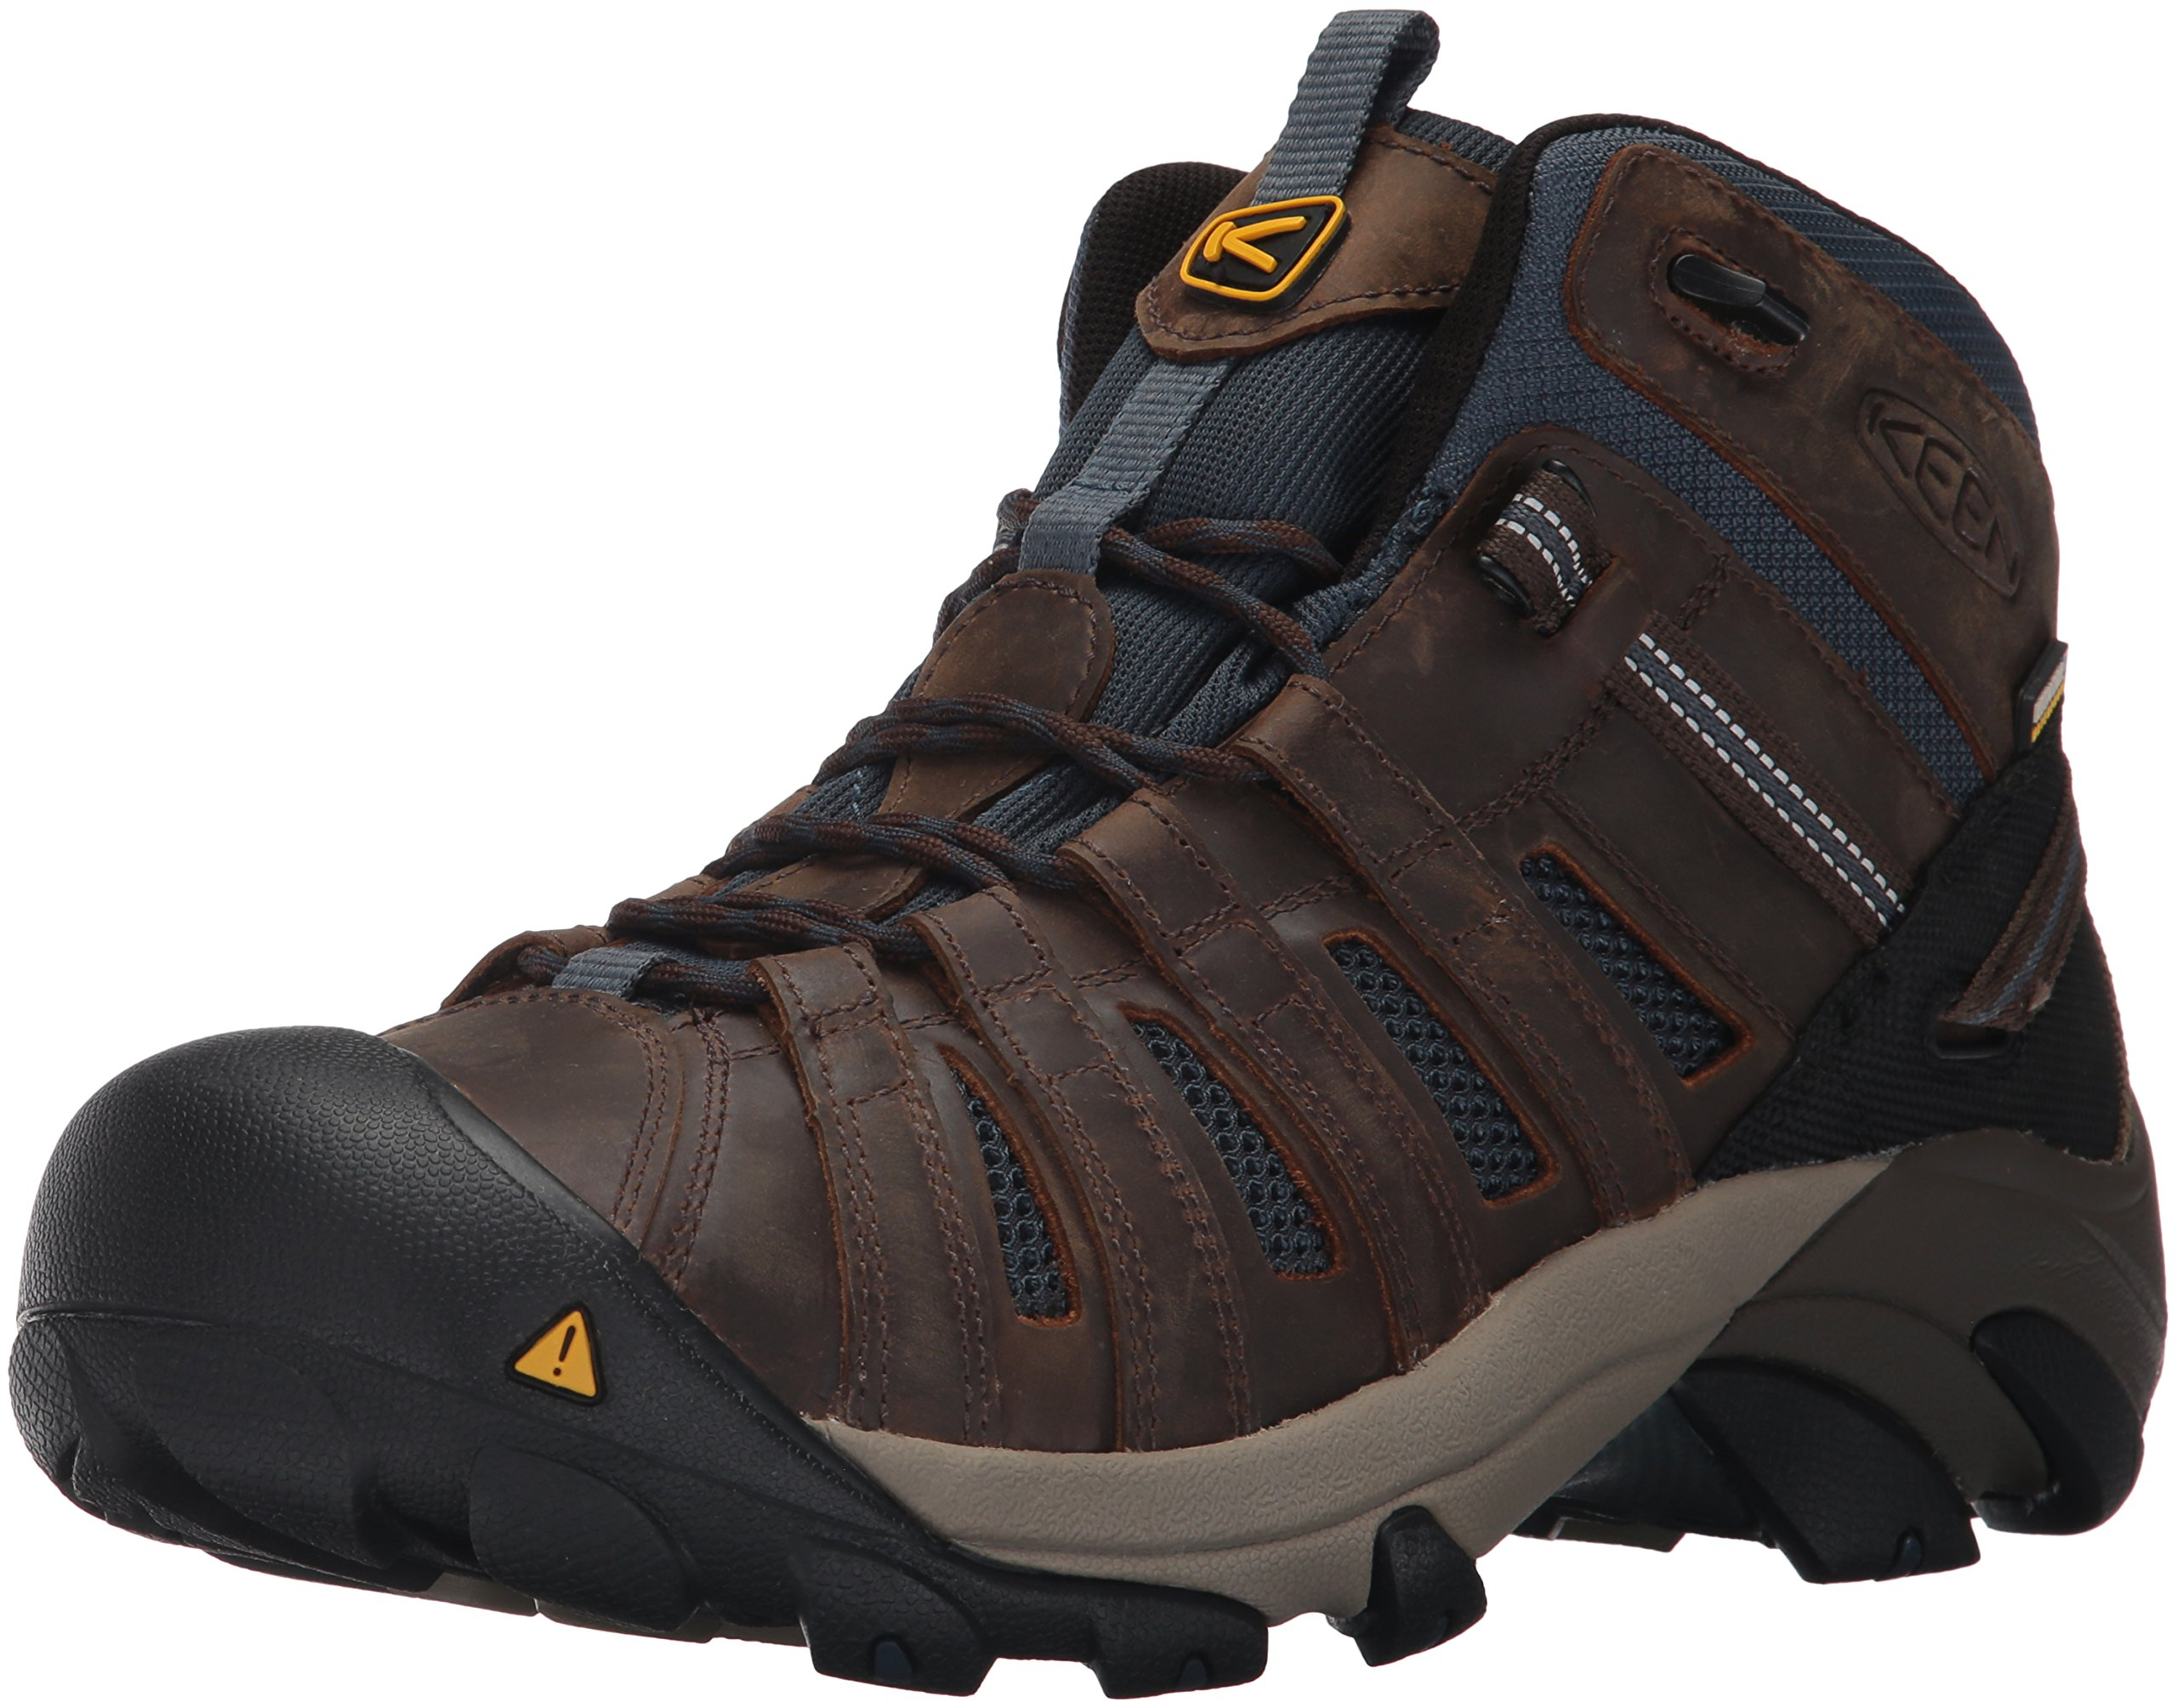 Keen Utility Men's Cody Mid Soft Toe Waterproof Industrial and Construction Shoe, Cascade Brown/Midnight Navy, 10.5 D US